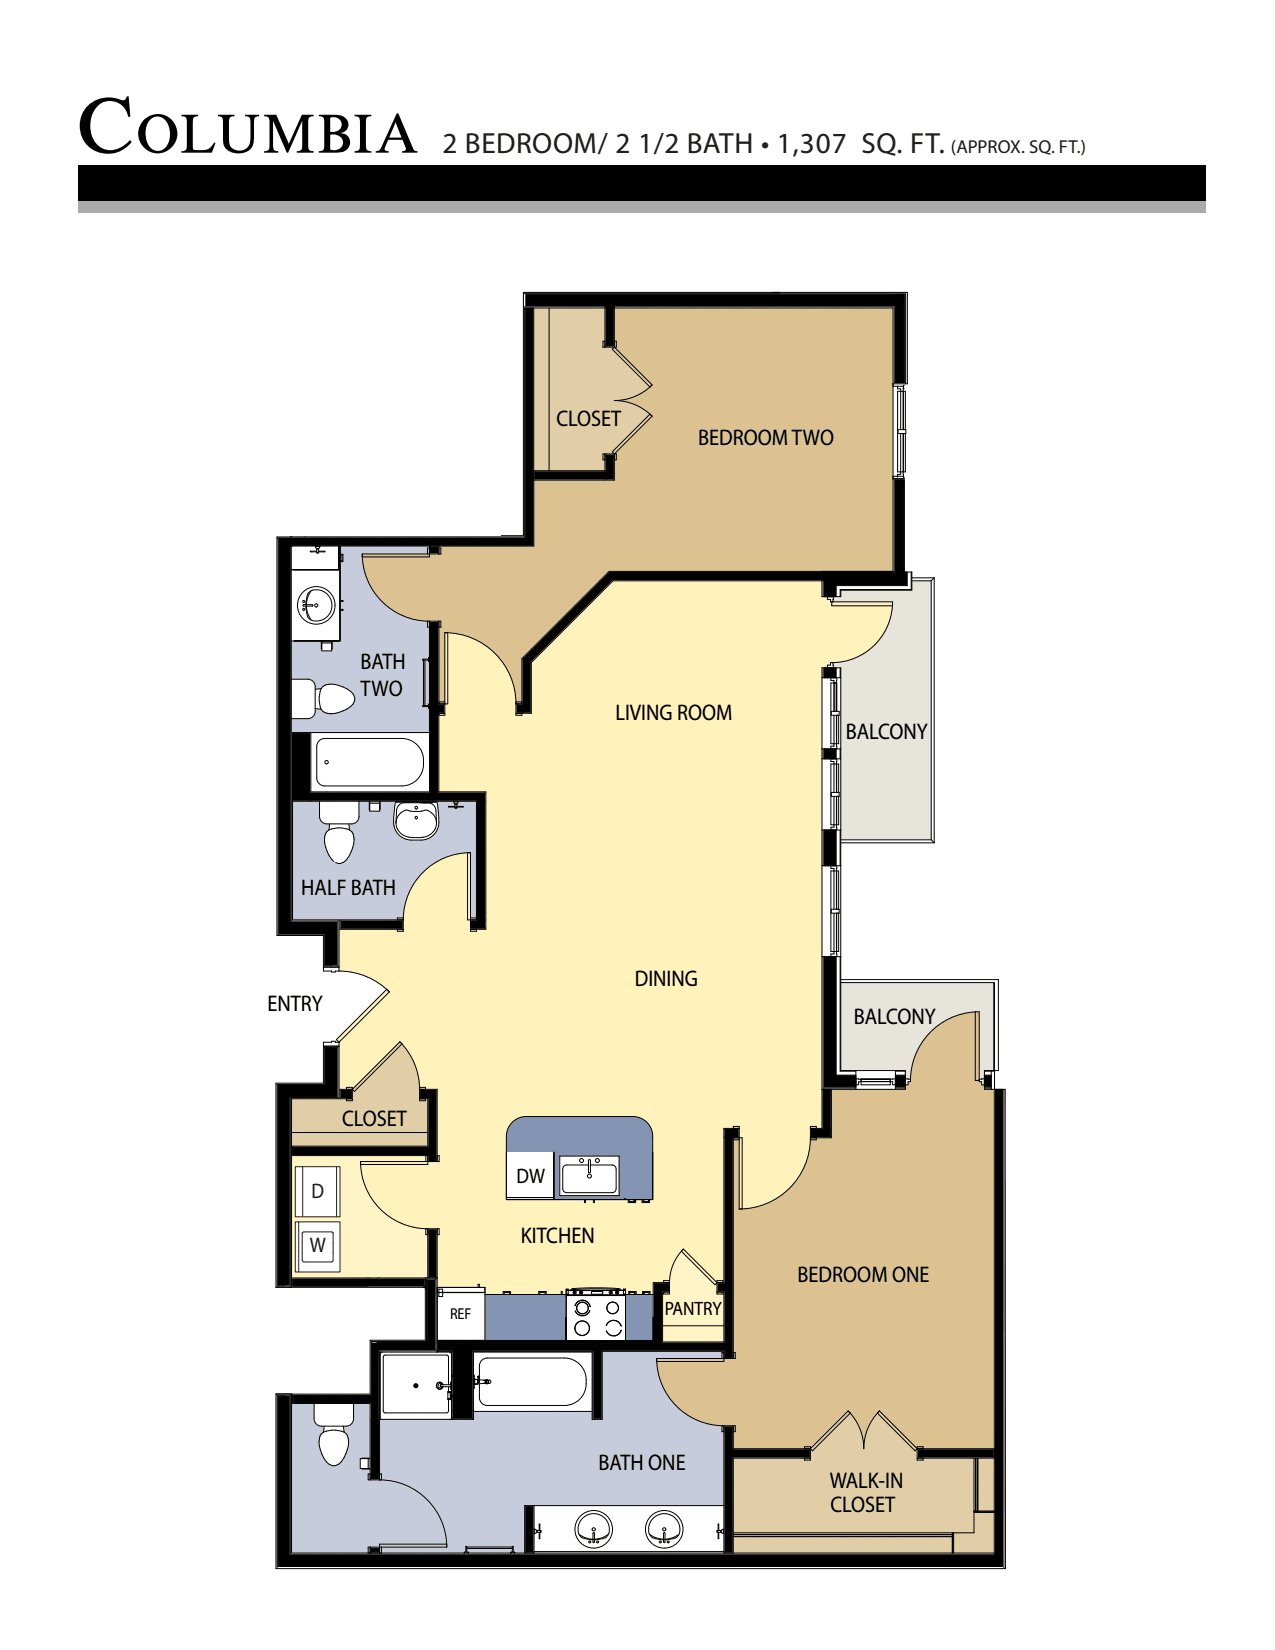 Columbia floor plan - 2 Bed / 2.5 Bath (1,037 Sq Ft)